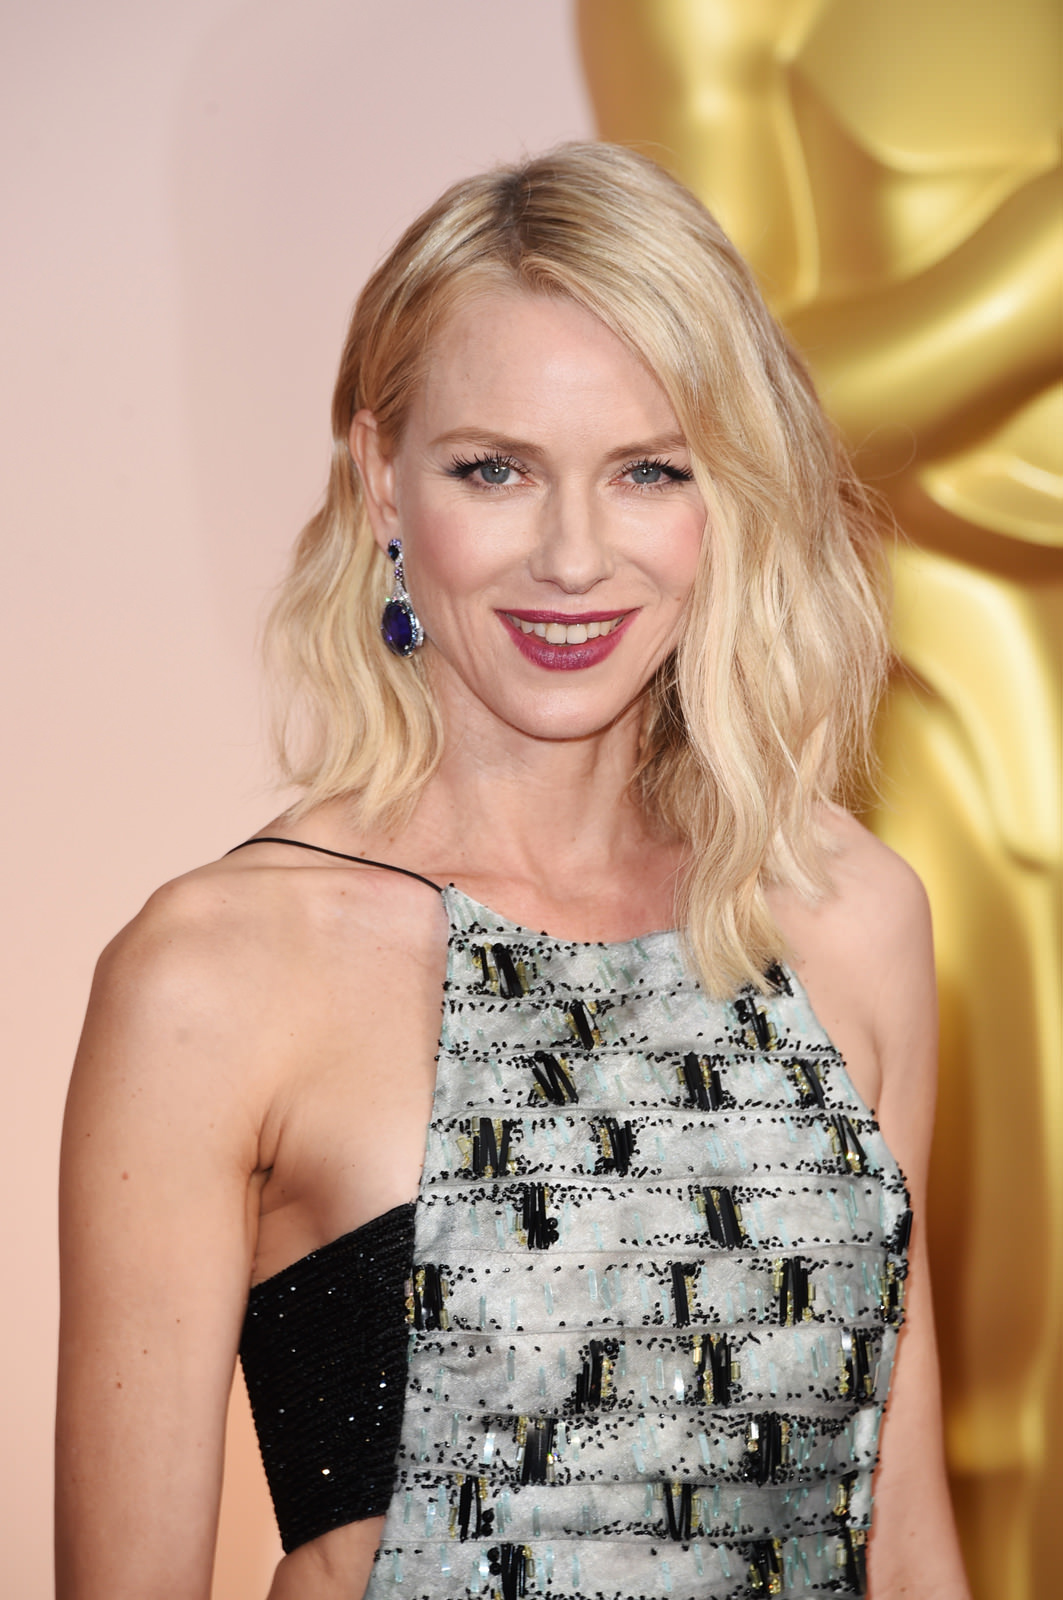 Naomi Watts Photo Gallery